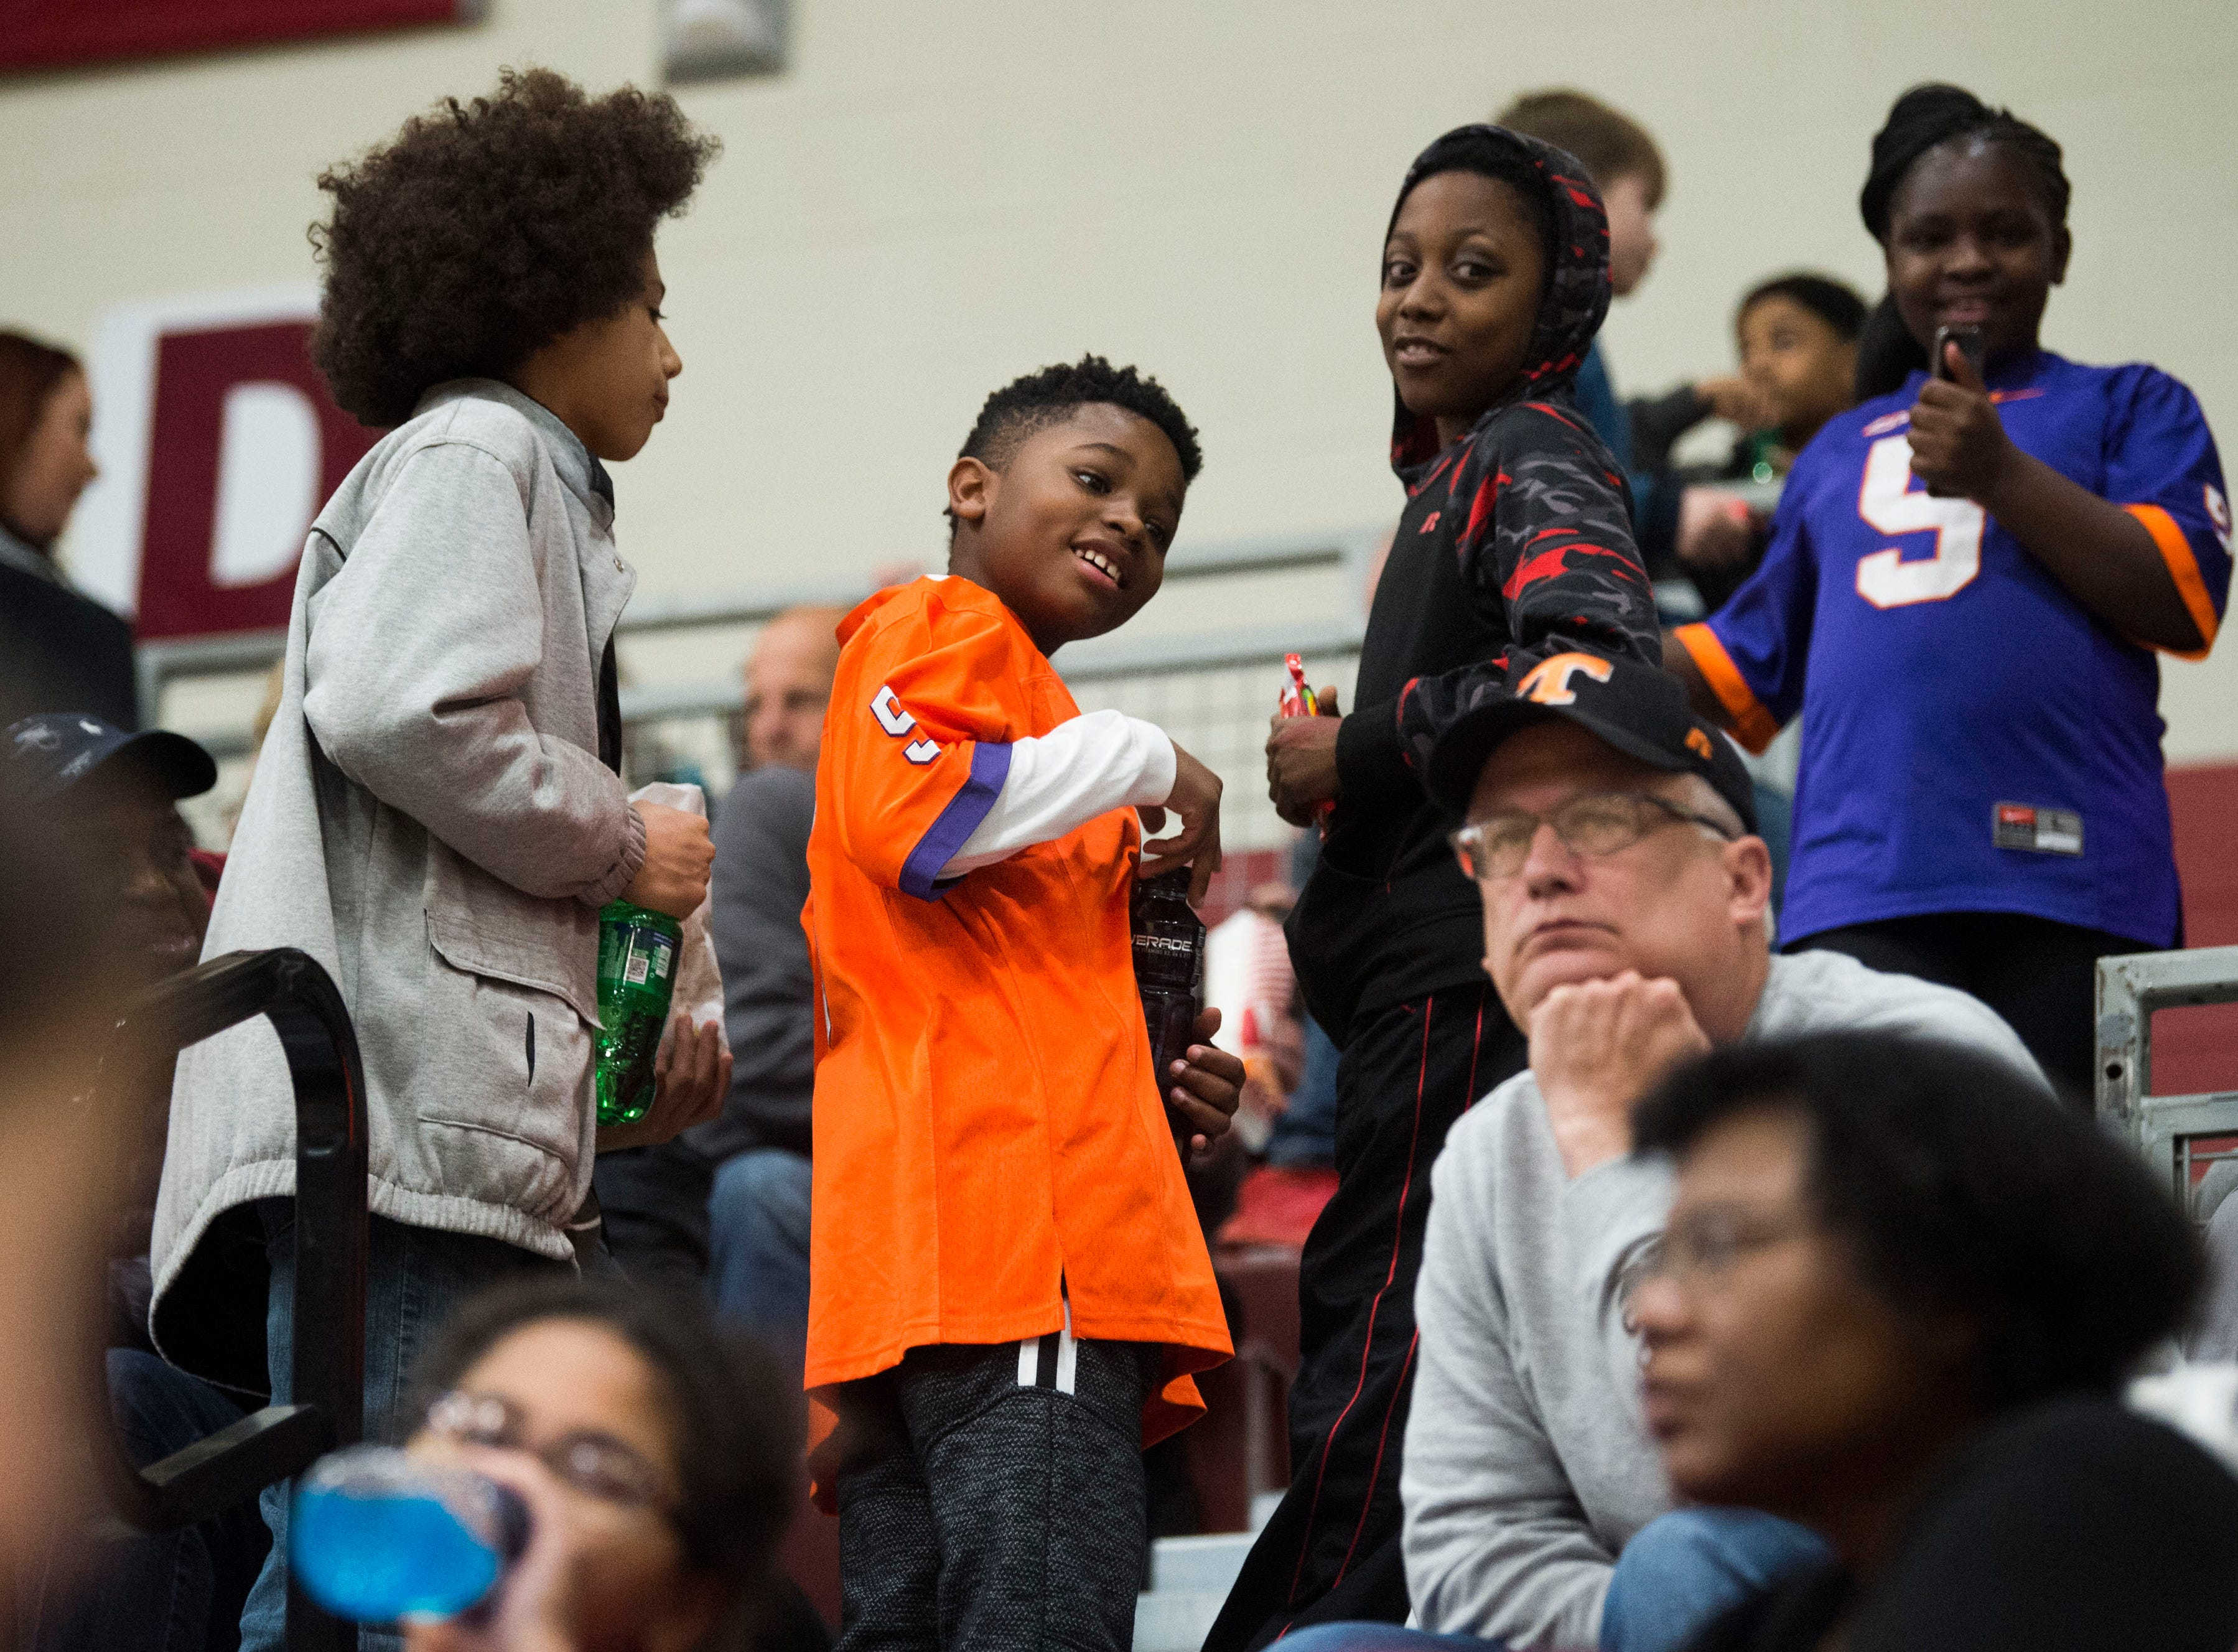 At center Tyree Porter, 11, and to his right Ja-Rel Jemerson 11, hang out with friends in the bleachers during a high school basketball game between Oak Ridge and Campbell County at Oak Ridge Friday, Feb. 1, 2019.